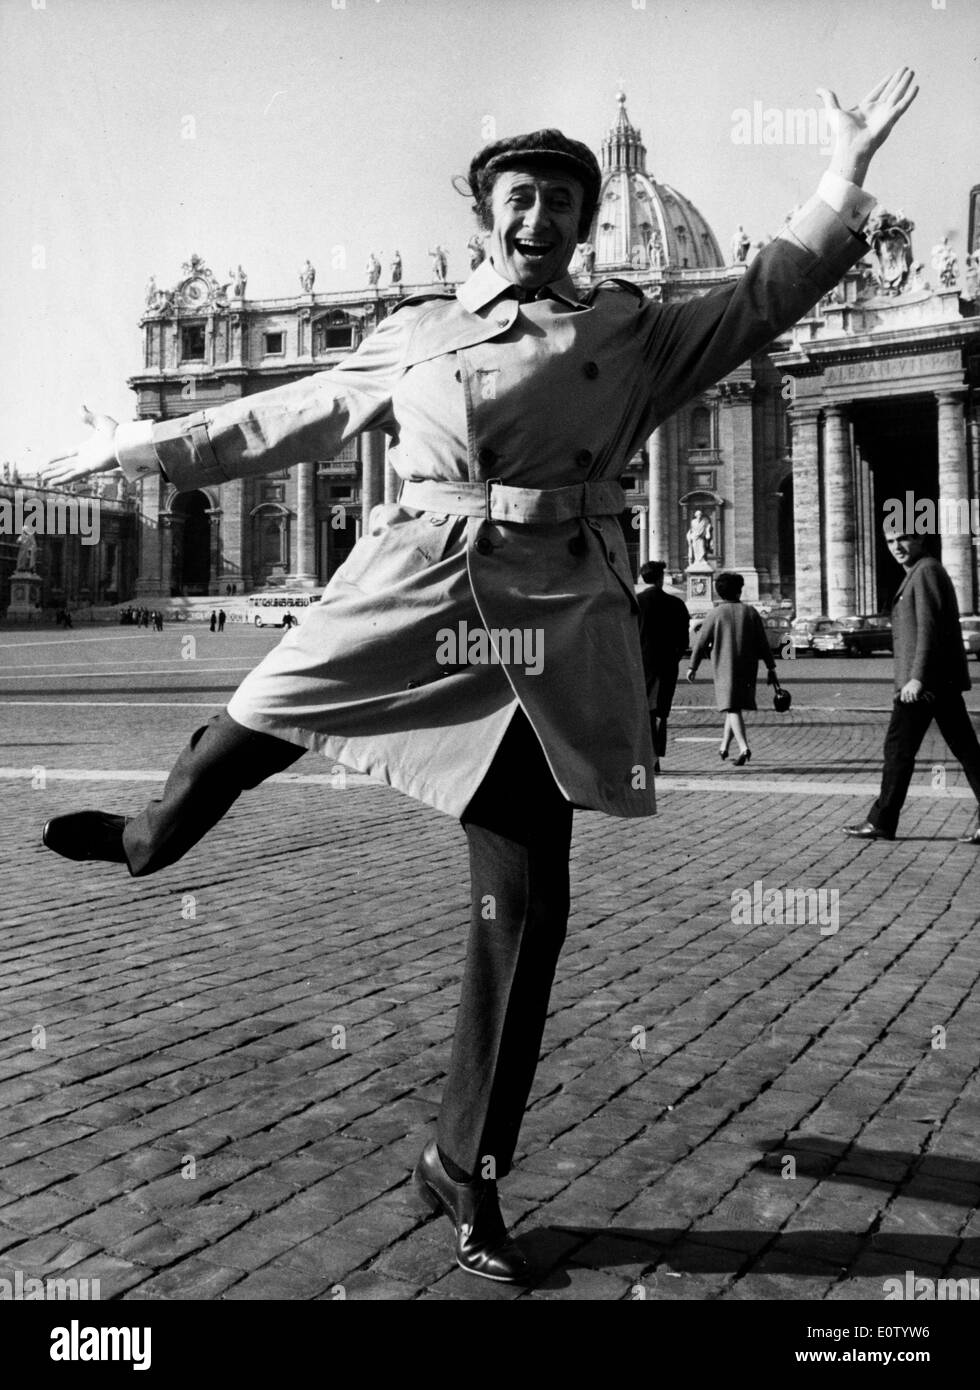 Marcel Marceau dancing in the streets of London - Stock Image